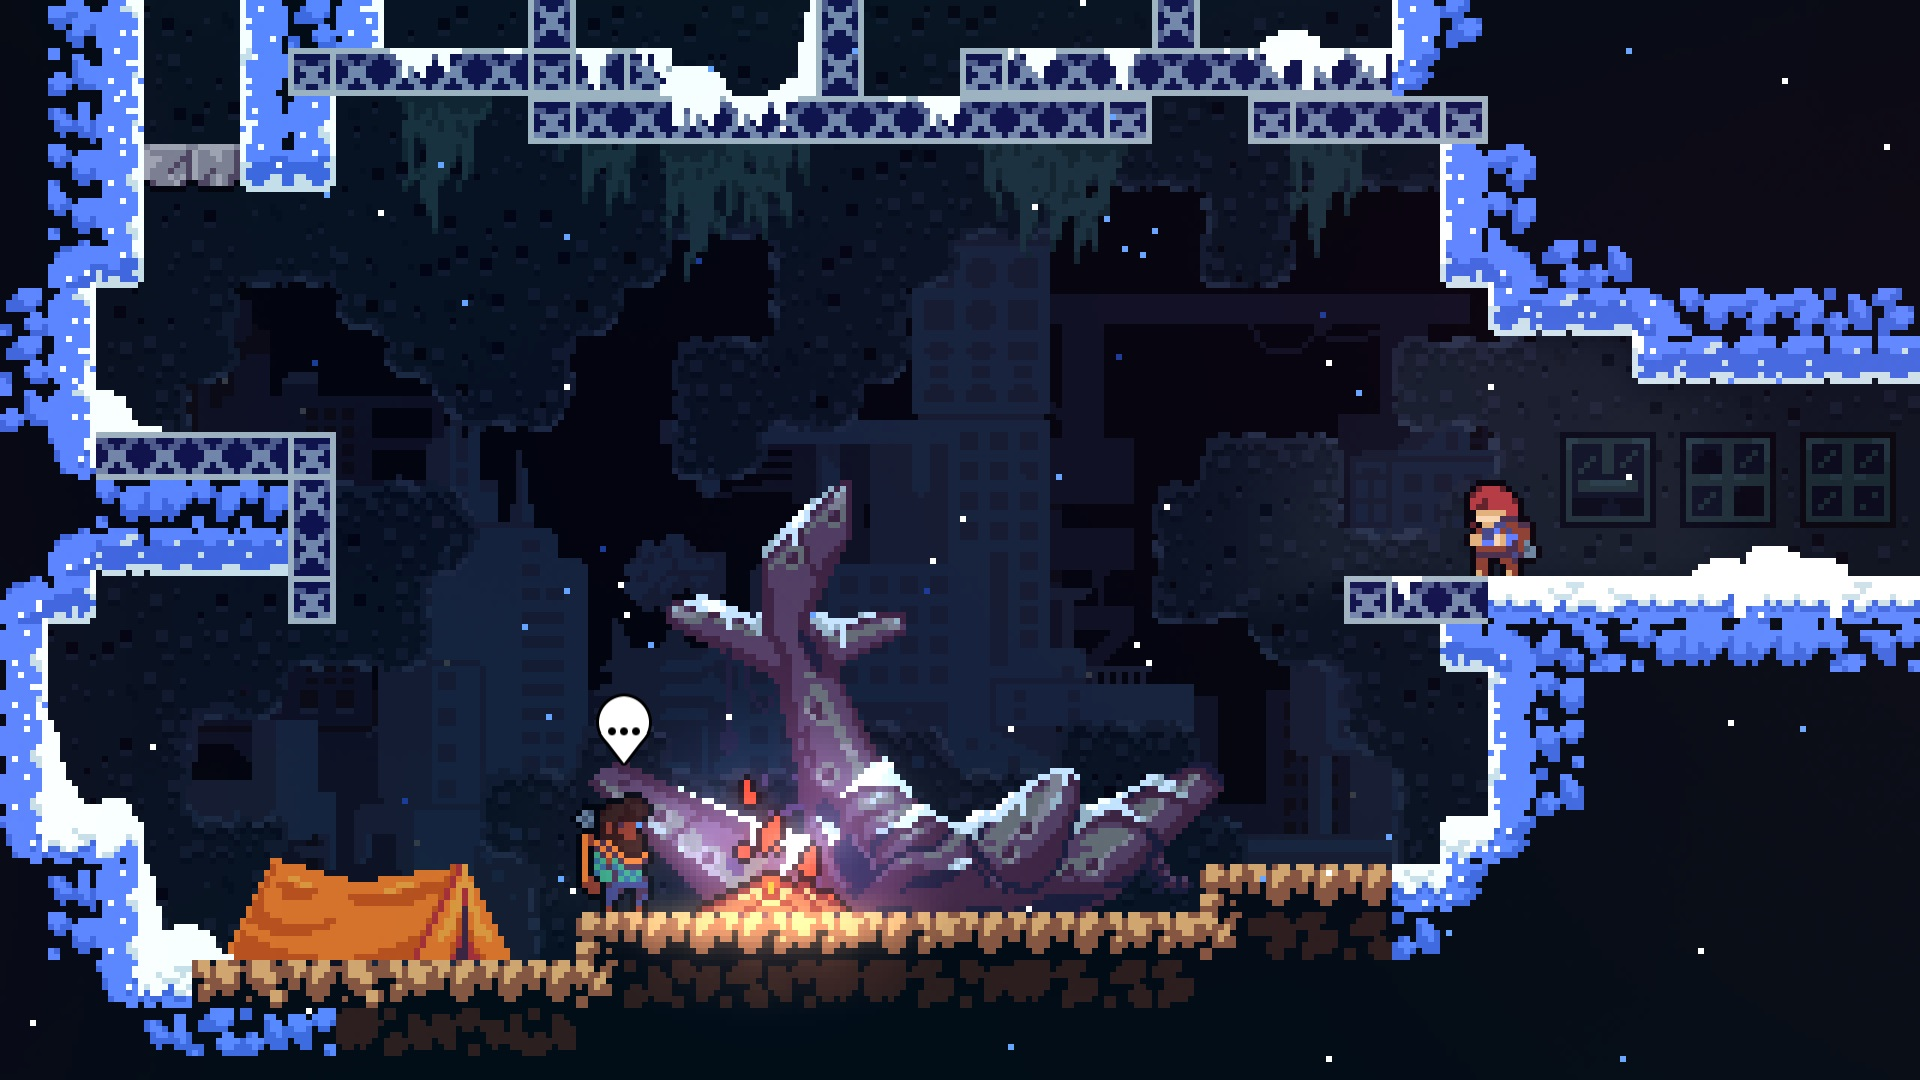 Celeste MacBook OS X Version gameplay